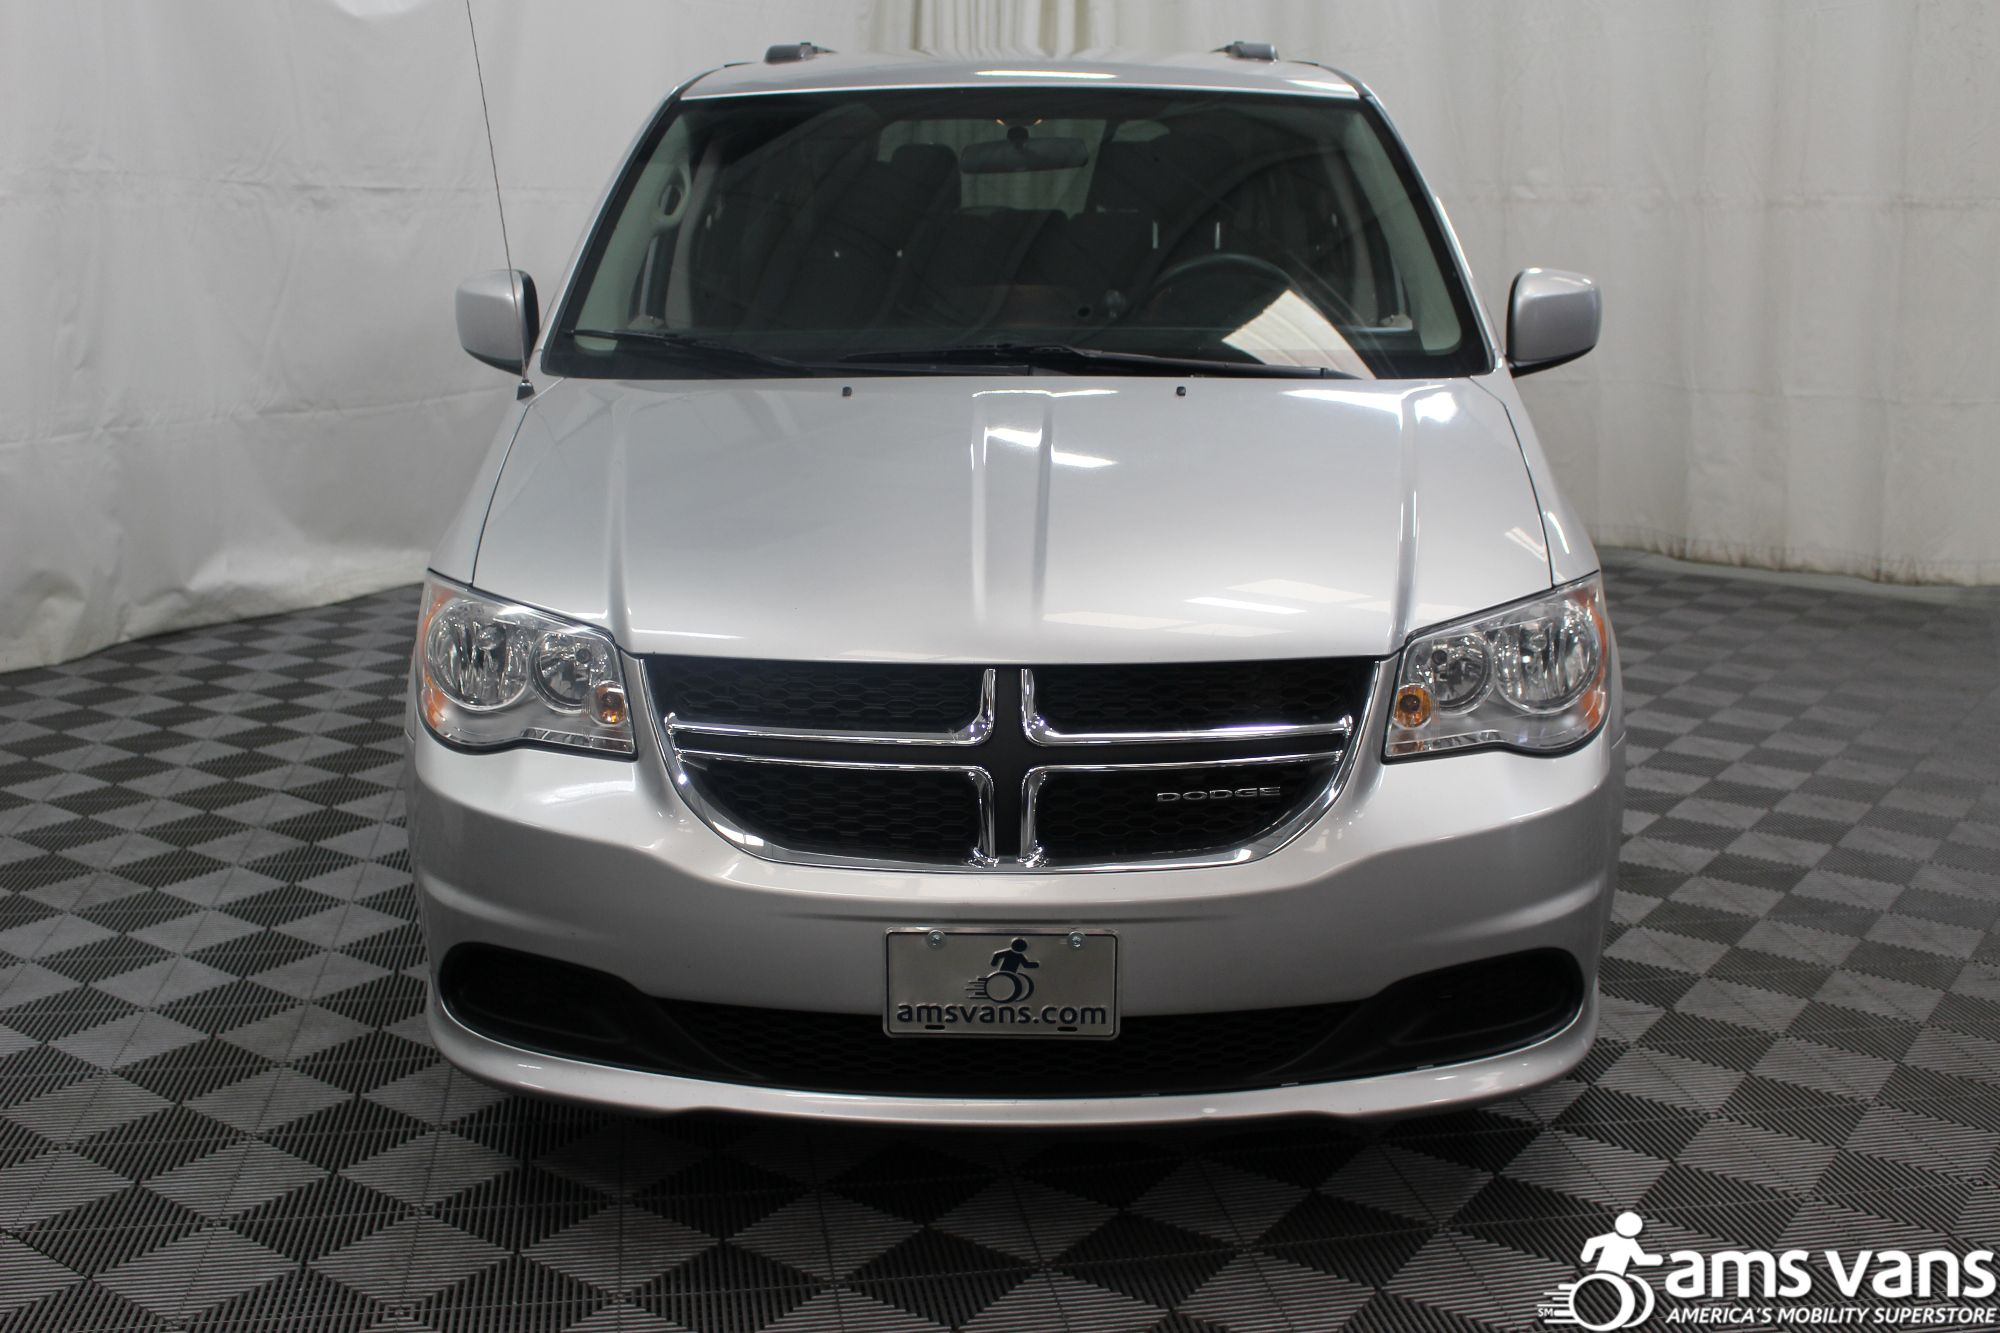 2011 Dodge Grand Caravan Mainstreet Wheelchair Van For Sale #14